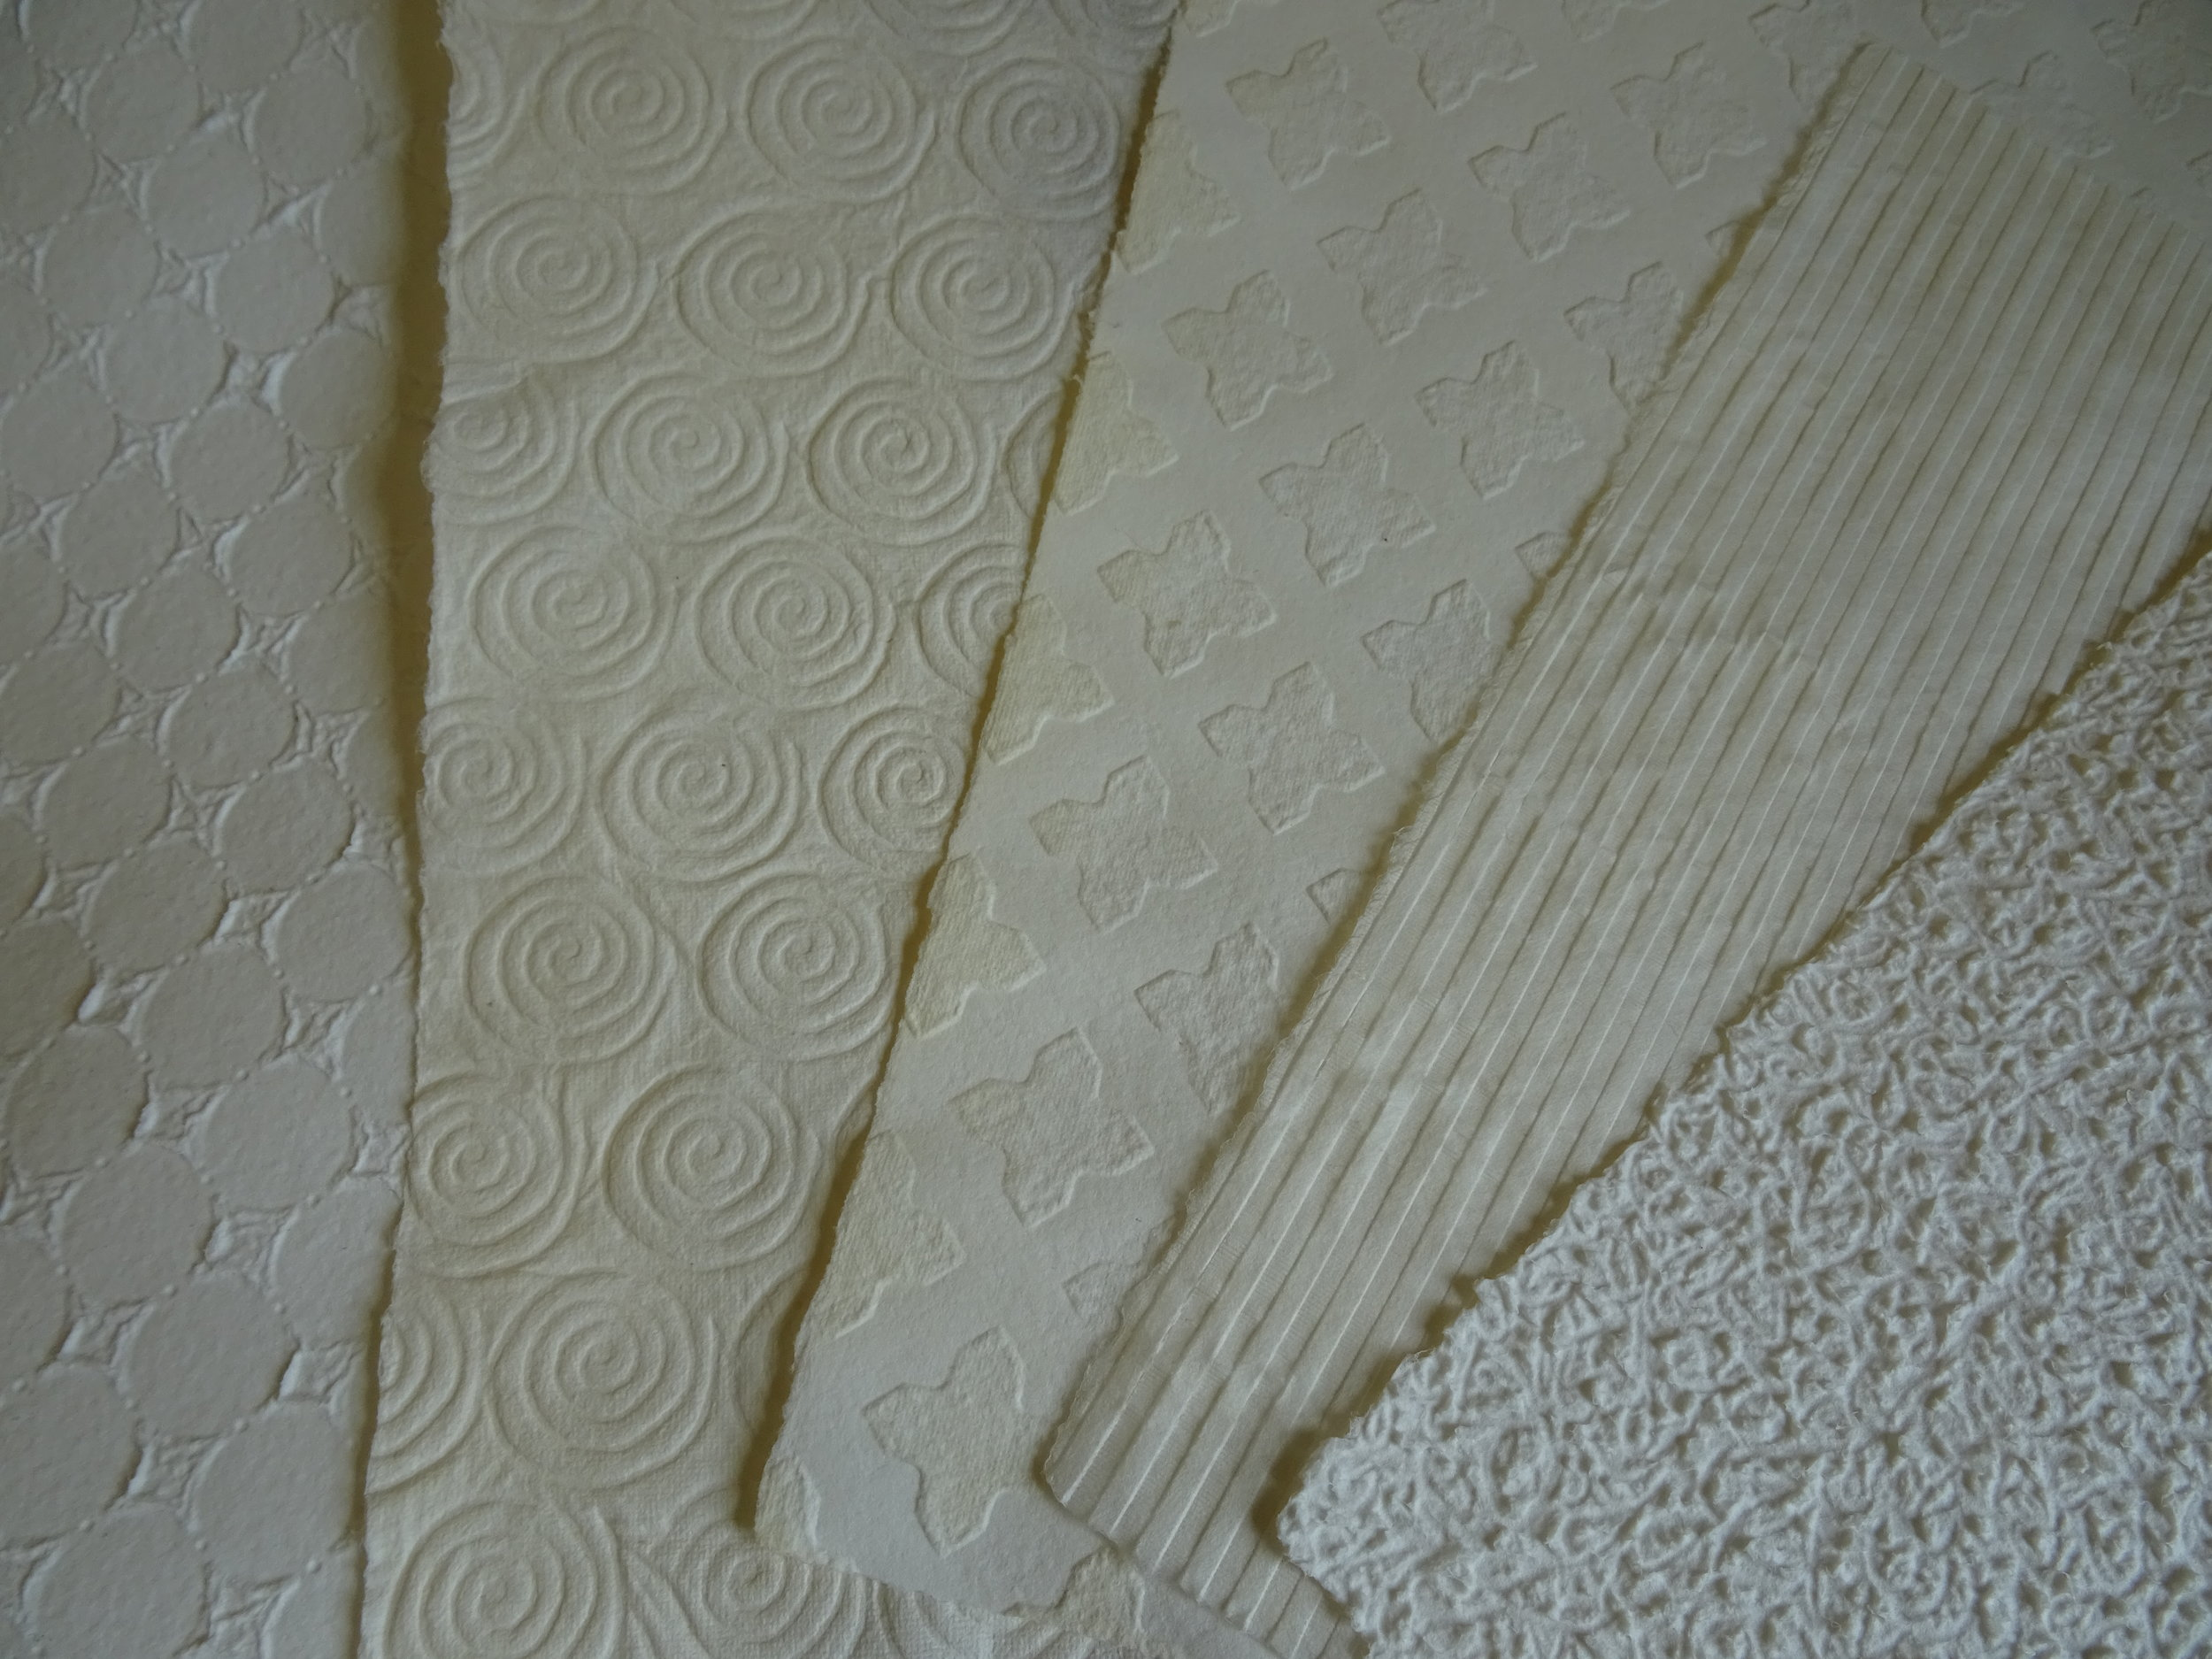 papers textured by embossing.JPG